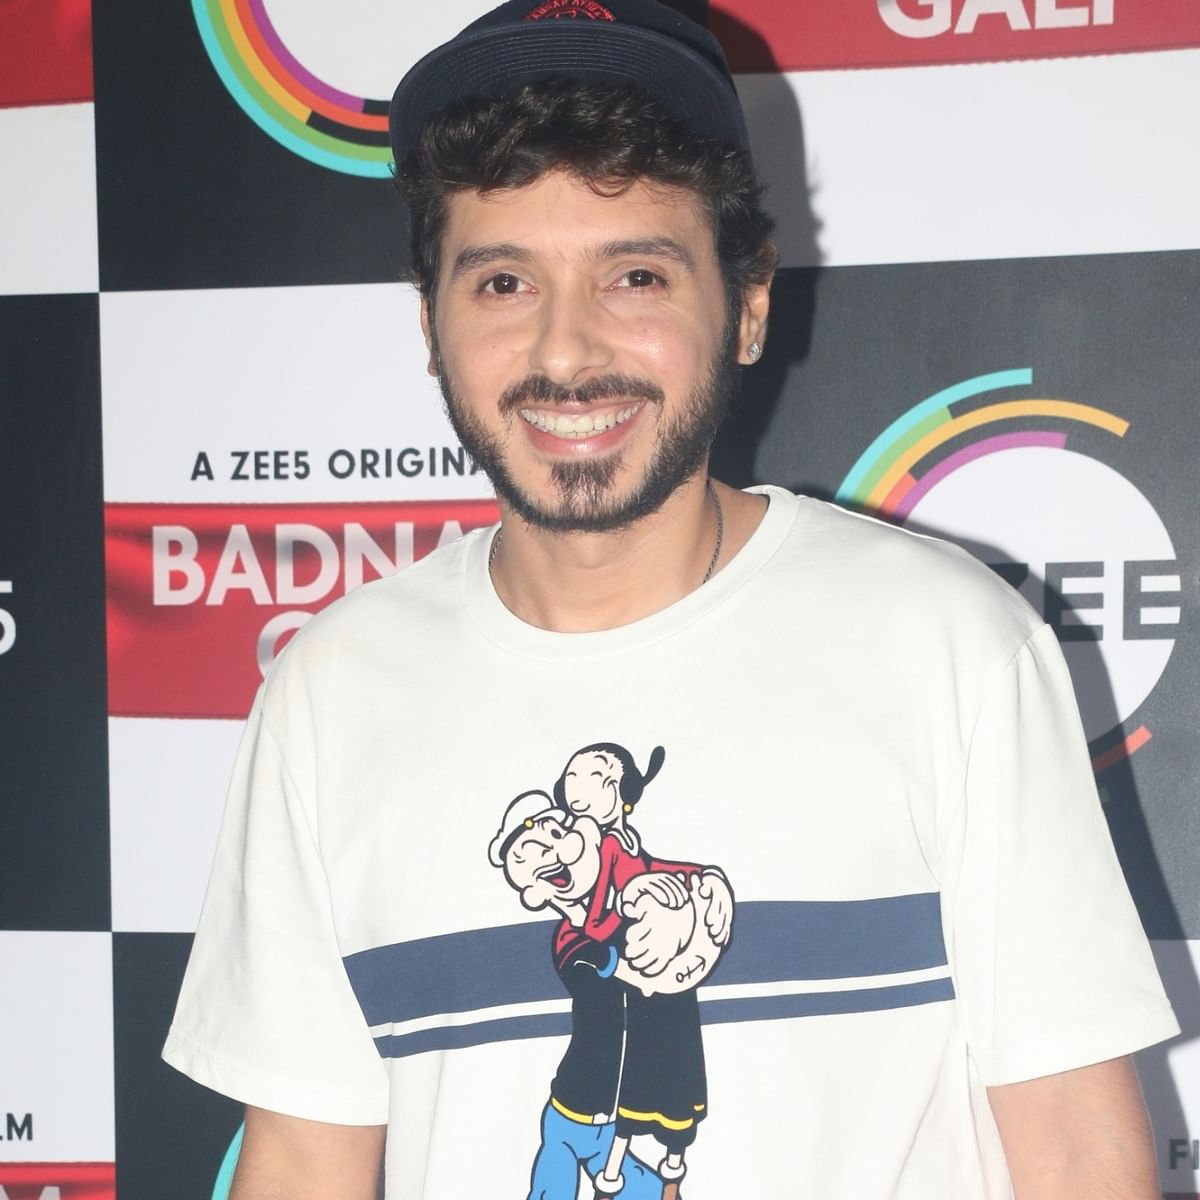 Divyendu Sharma: Fun to portray someone you are not in real life